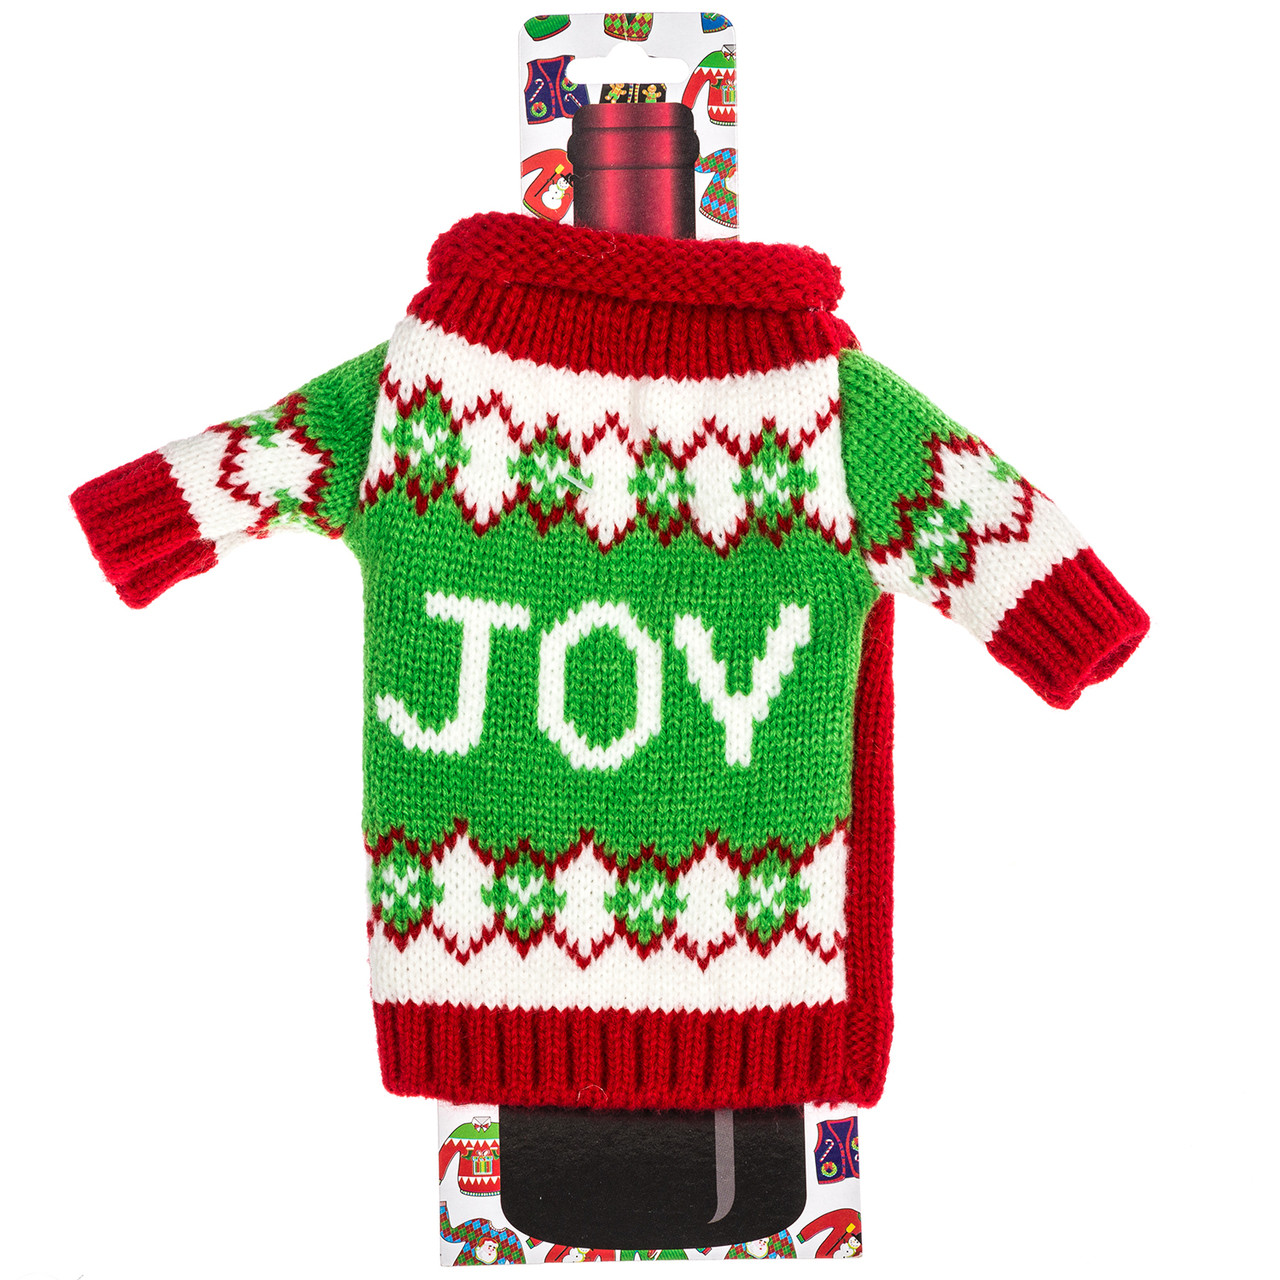 decor fun ugly a cake sweater decorations an decorating free tutorial make to how article